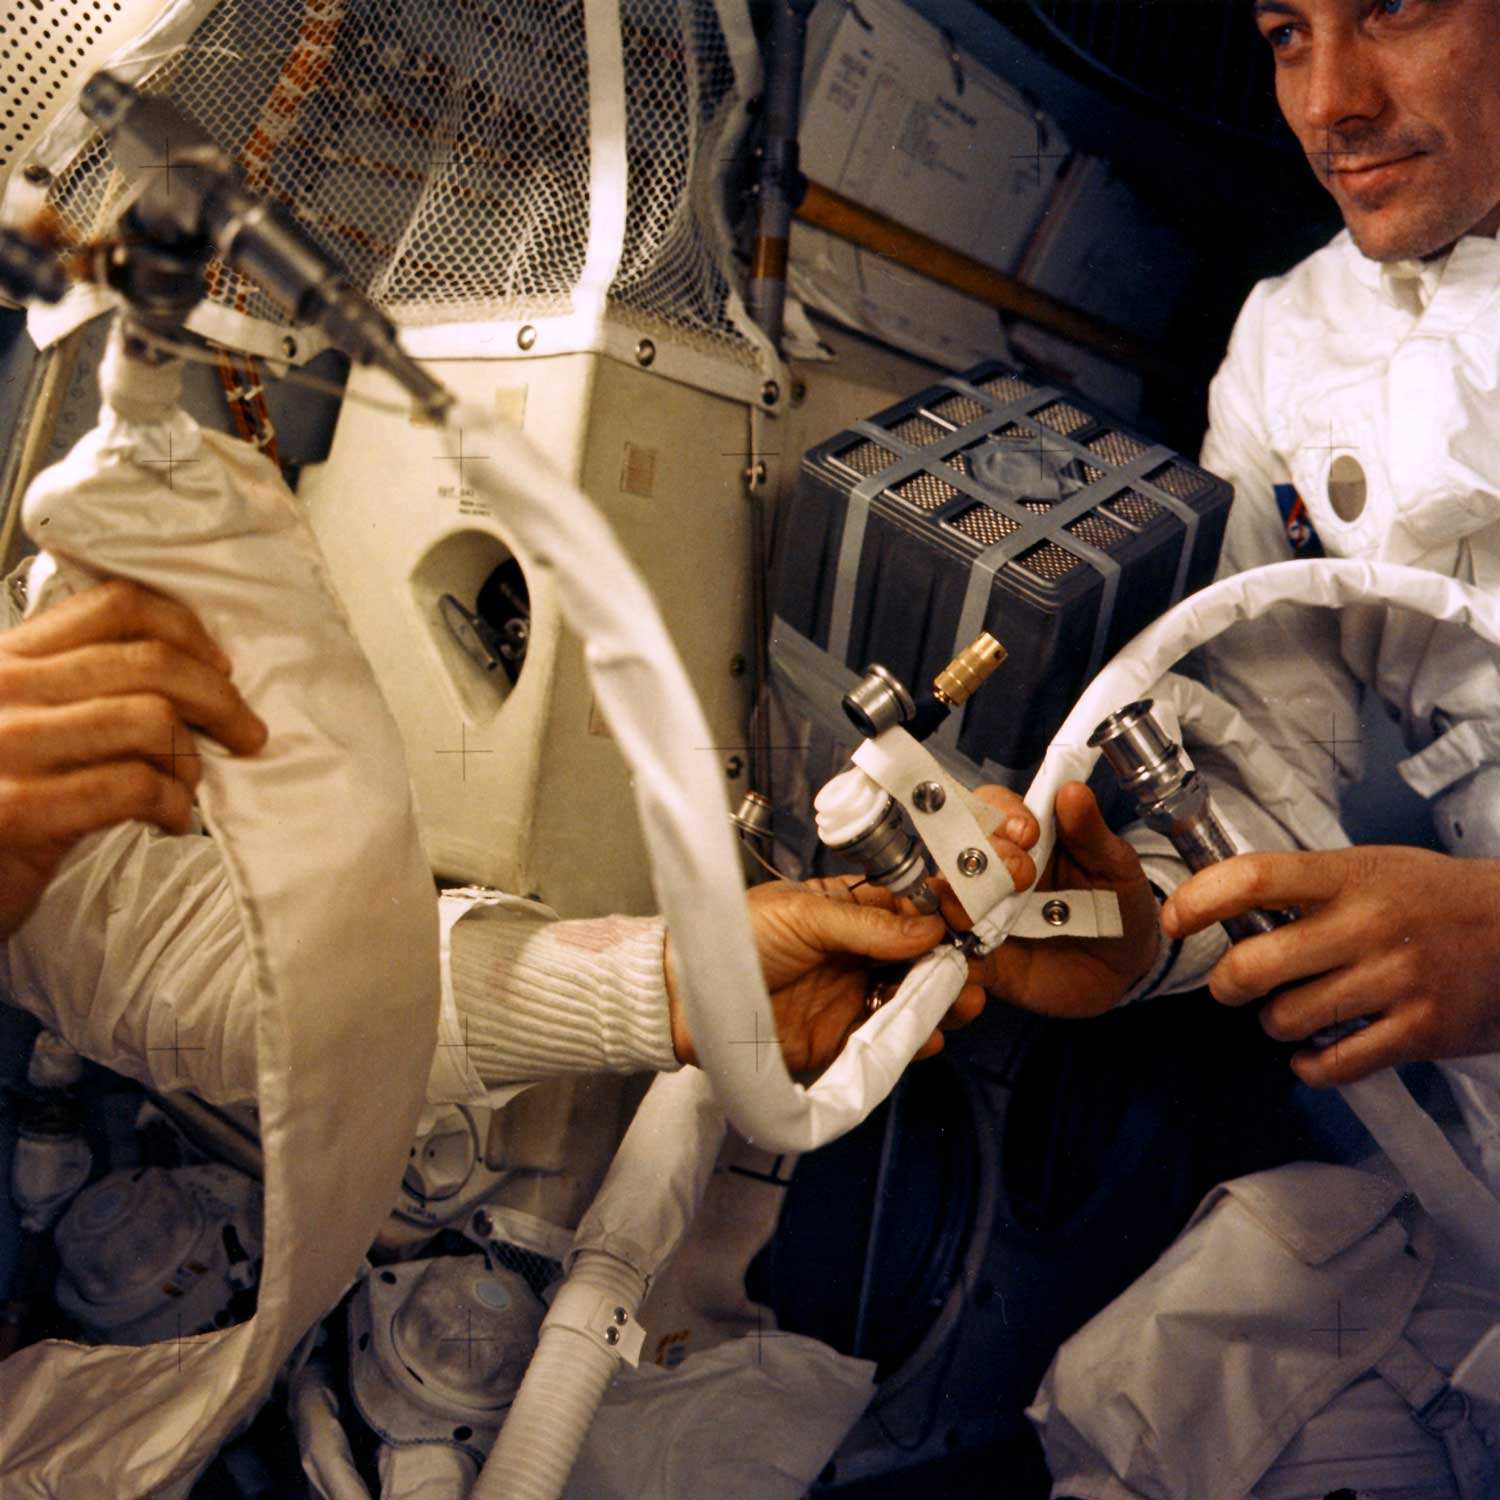 Interior view of the Apollo 13 Lunar Module (LM) during the journey back to Earth, showing some of the temporary survival apparatus rigged up with instructions from ground control staff. (Image: NASA)